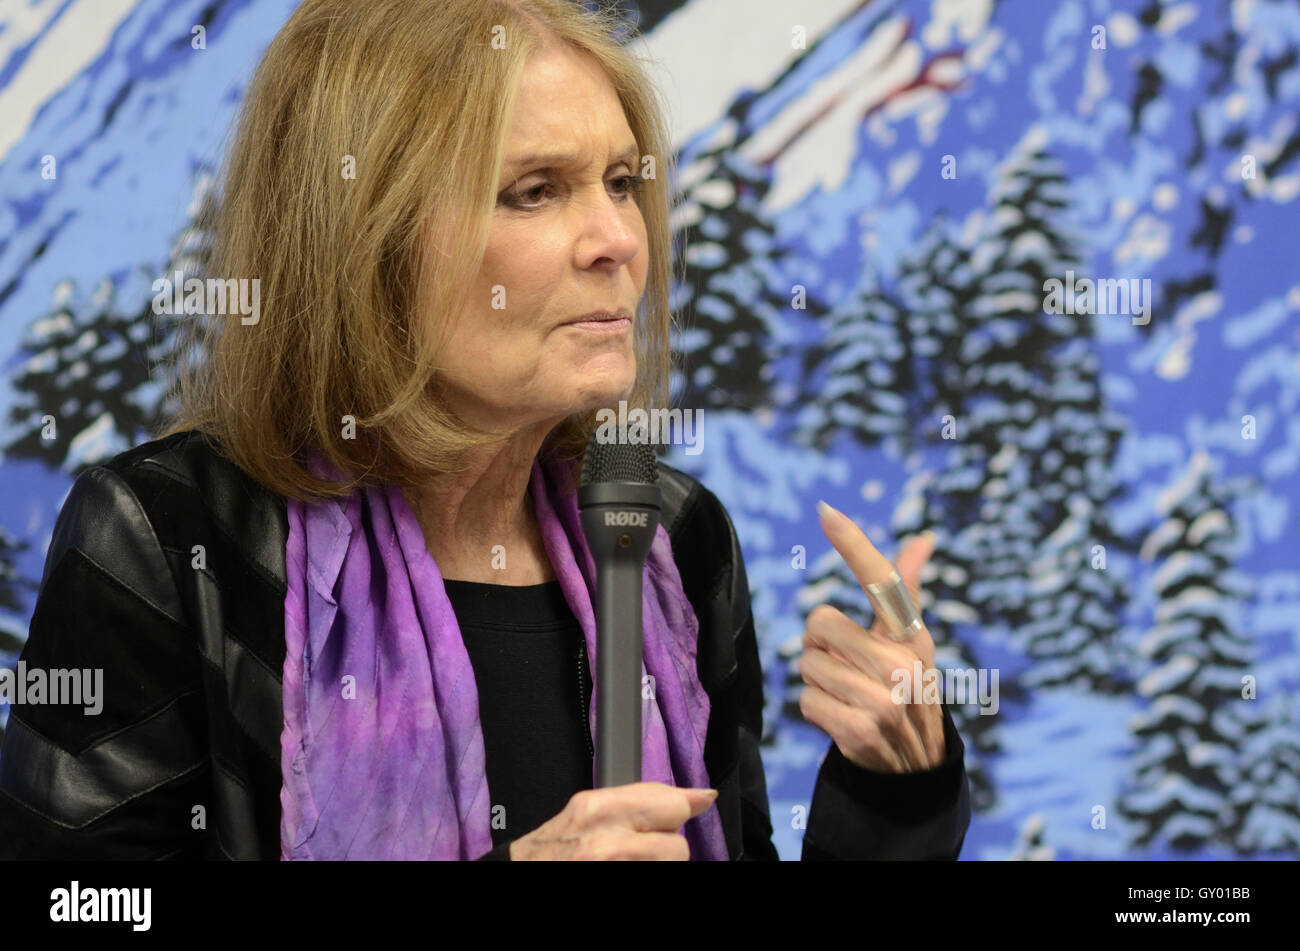 Gloria Steinem at the Boulder Democratic Party Headquarter Sept. 16, 2016 to support Hillary Clinton for President. - Stock Image